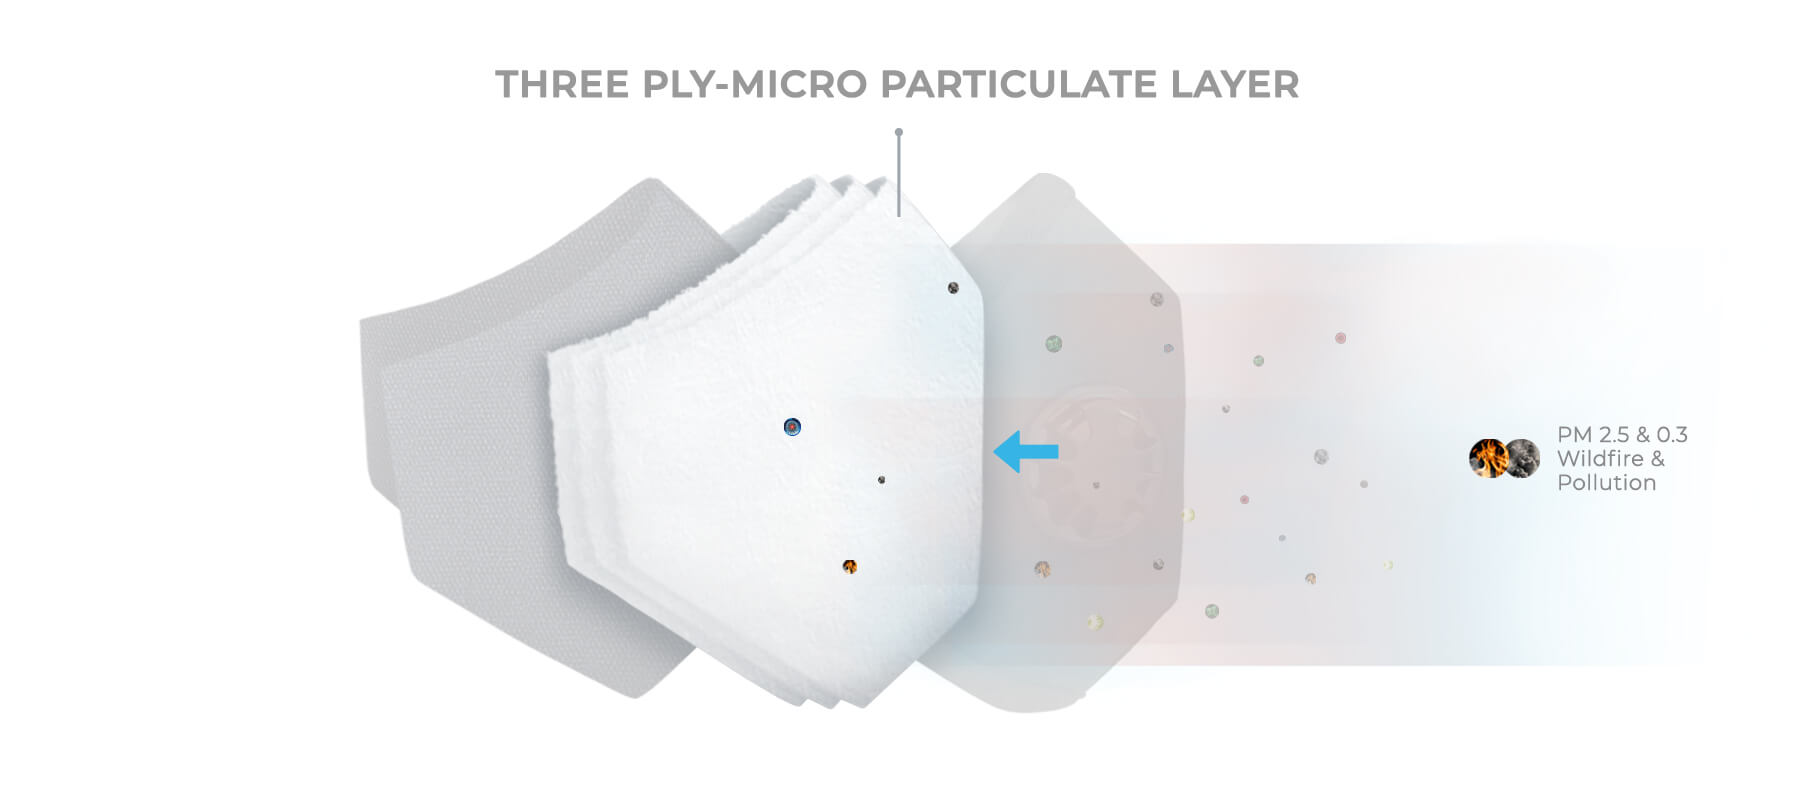 3ply filter technology